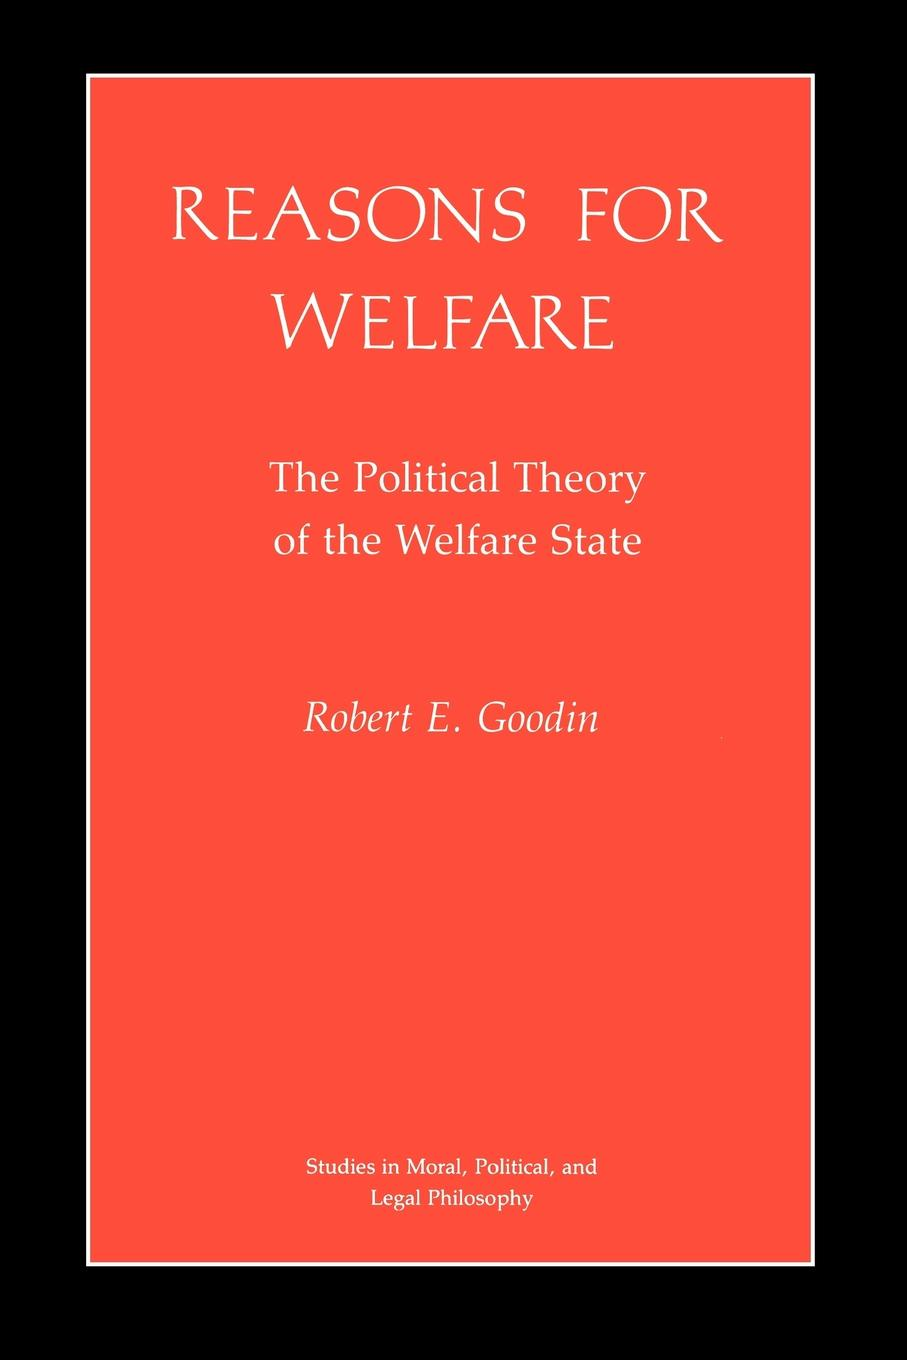 Robert E. Goodin Reasons for Welfare. The Political Theory of the Welfare State elisa new new england beyond criticism in defense of america s first literature isbn 9781118854563